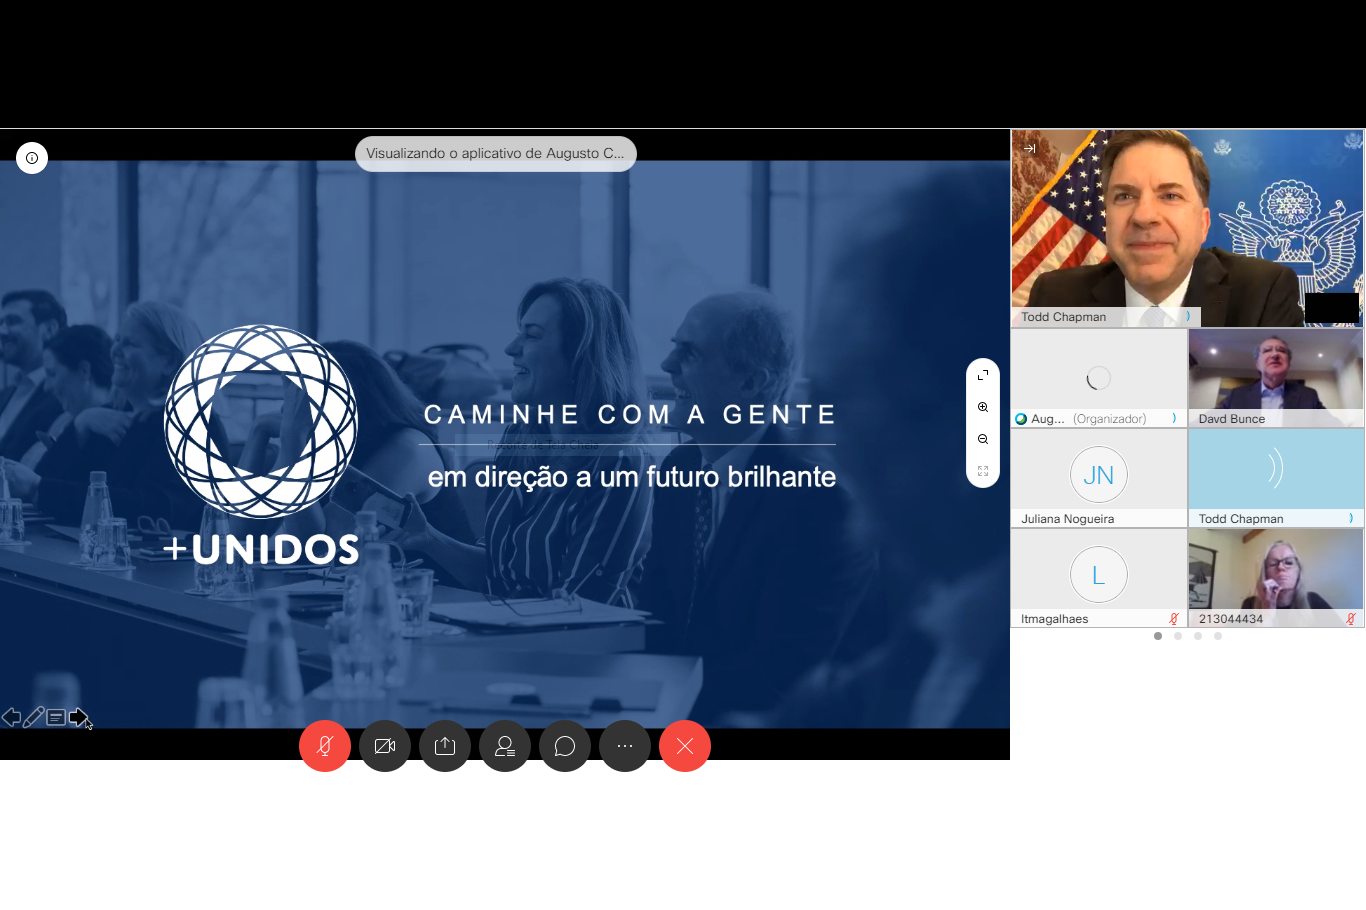 +UNIDOS PROMOTES ONLINE MEETING WITH US COUNCIL AND AMBASSADOR